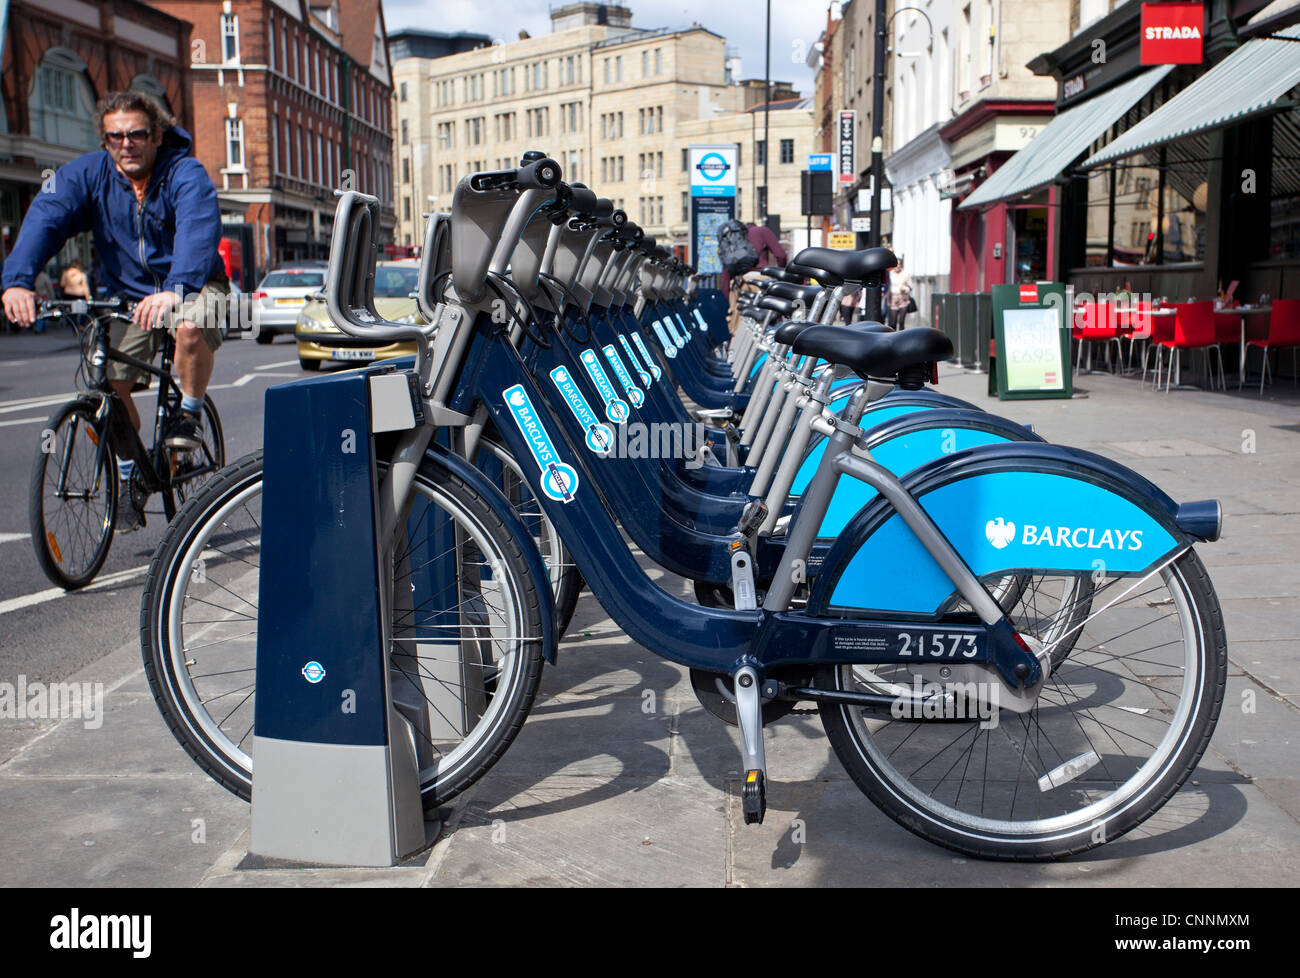 A bicycle docking station as part of the new London's Barclay's bicycle hire scheme, Commercial street, - Stock Image